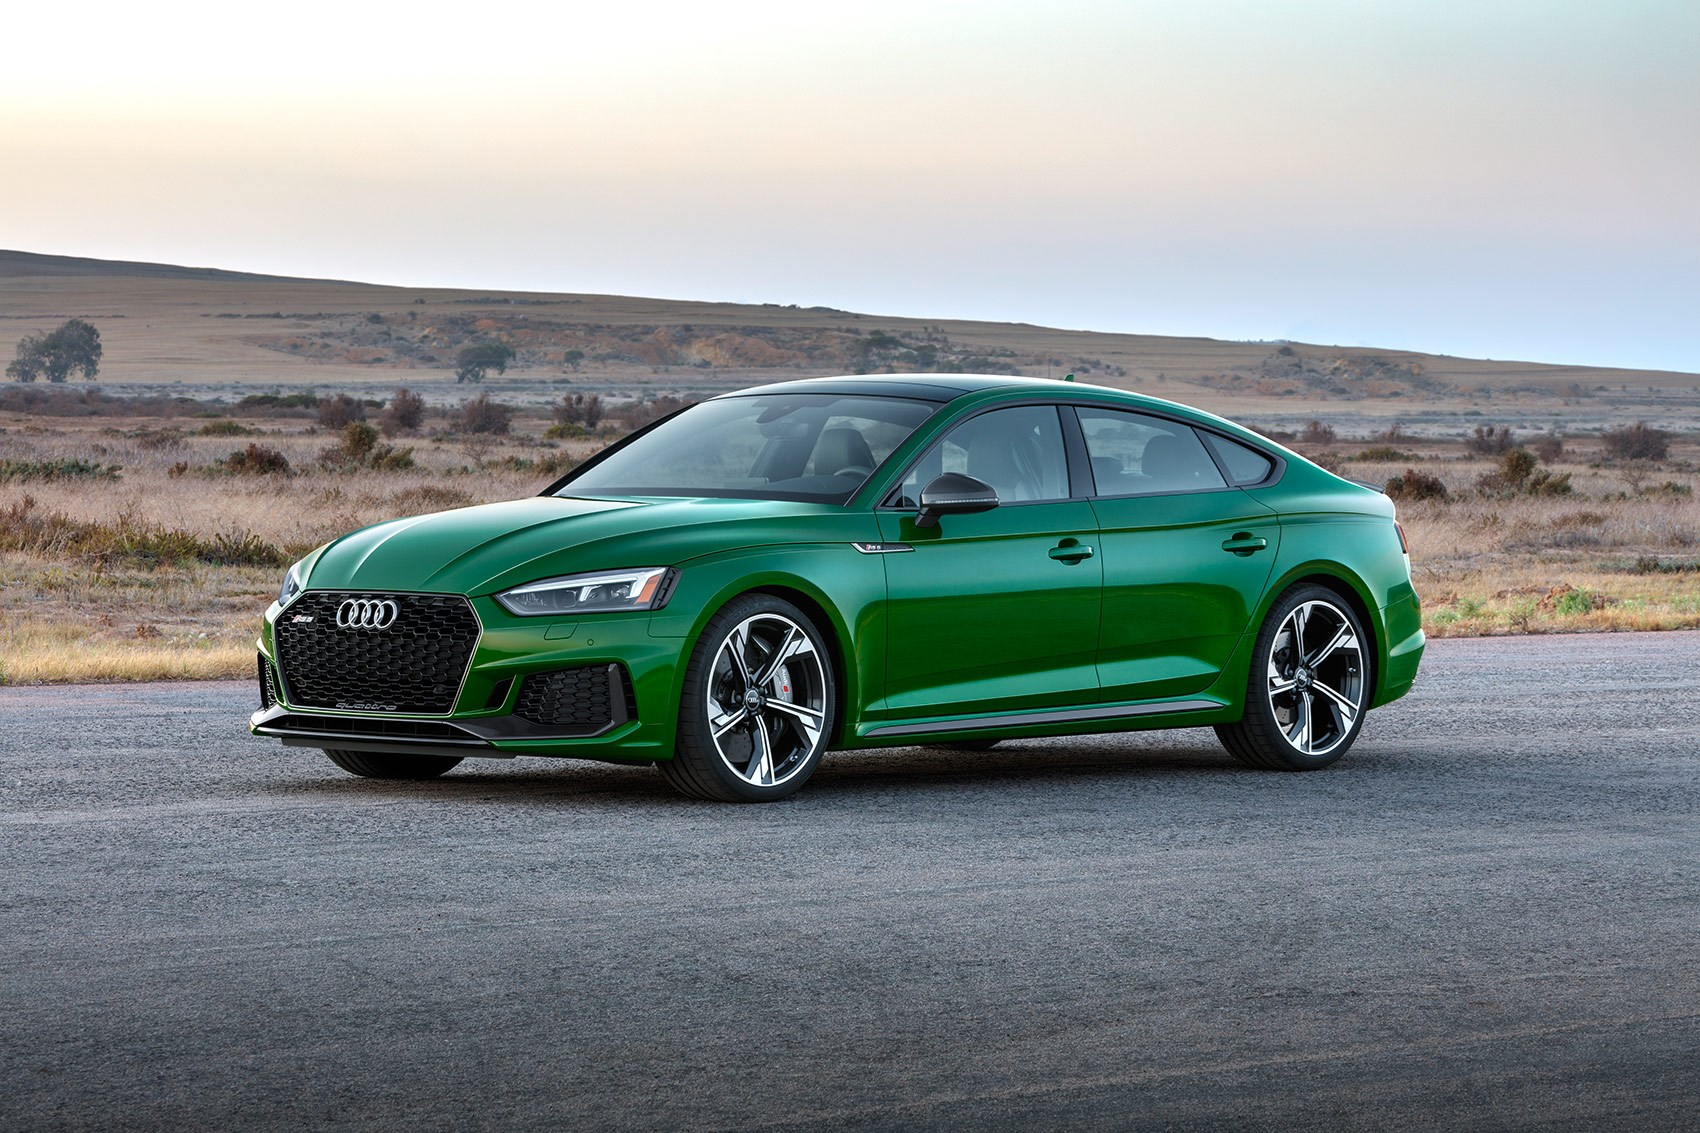 Audi RS5 Sportback turns up the torque